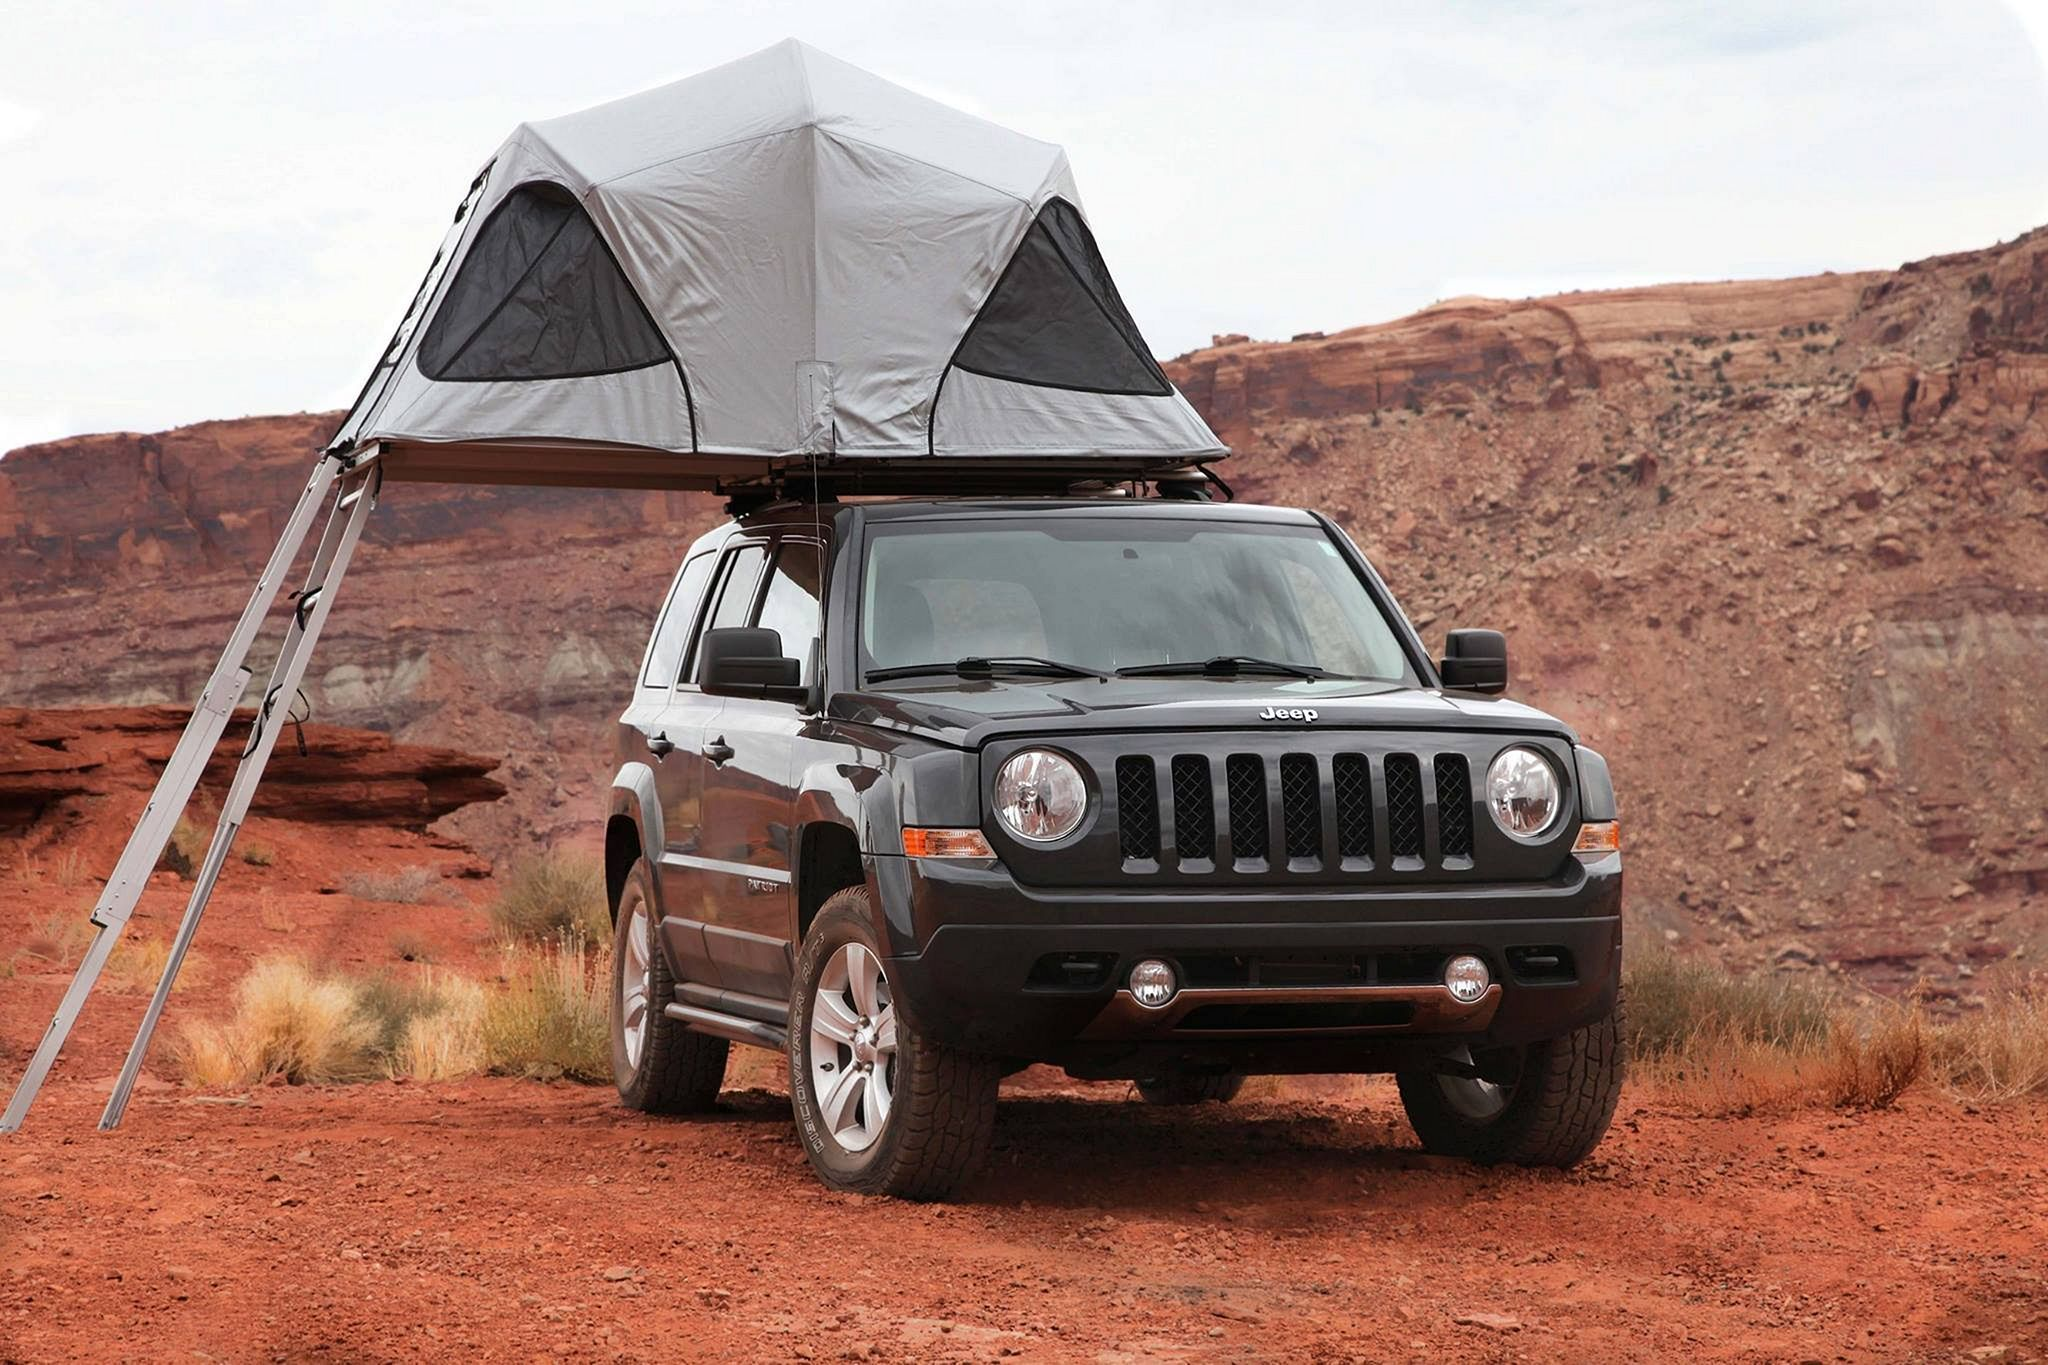 65 Best Lifted Jeep Patriot pact Crossover SUV